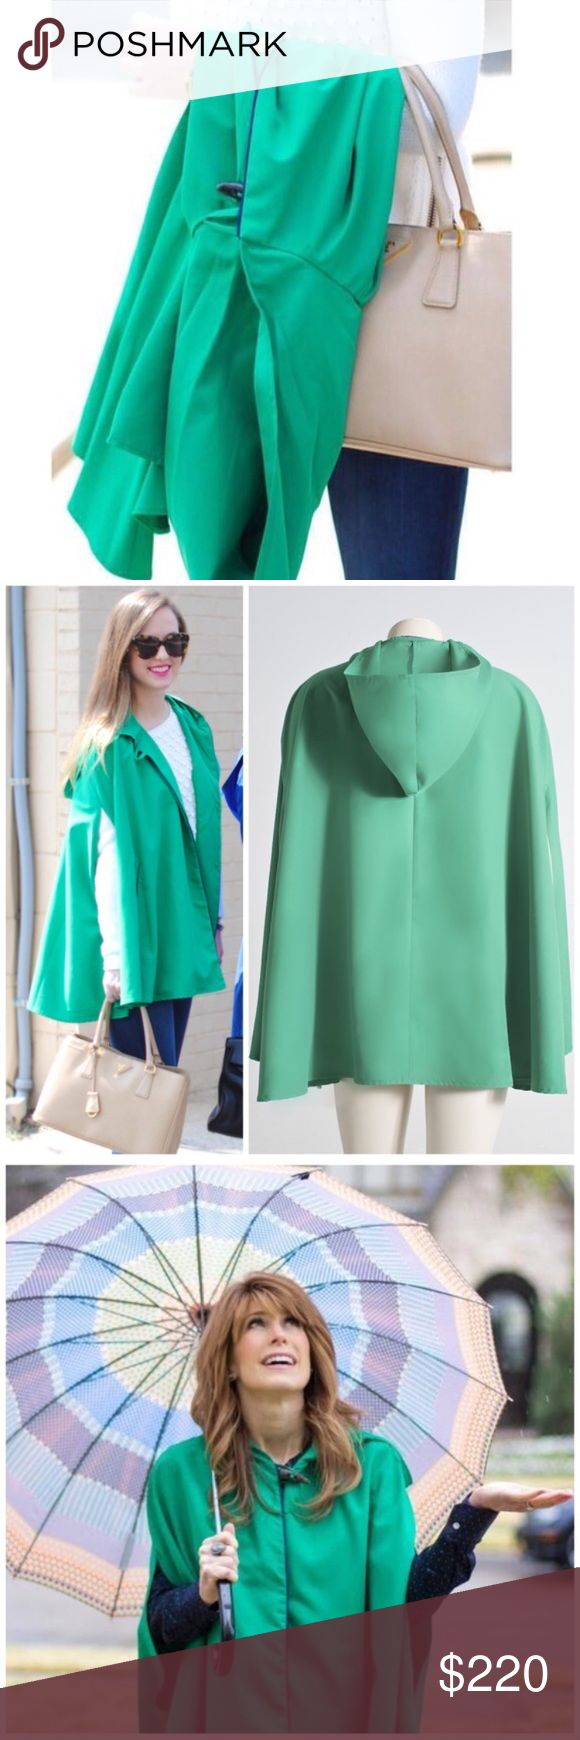 """Game Day"" coat lightweight Cape This is the cutest raincoat cape that I own, so I just HAD to pick up an extra for you! Size (s) lightweight cape is perfect for looking chic while it rains on all your haterssssss 😀😎🌂 brand new with tags // vibrant green cape highlighted by royal blue piping has perfectly placed front side pockets. With this cape jacket, no umbrellas or cheap plastic ponchos are needed // only showing other colors in final pic to show more details of the overall body…"